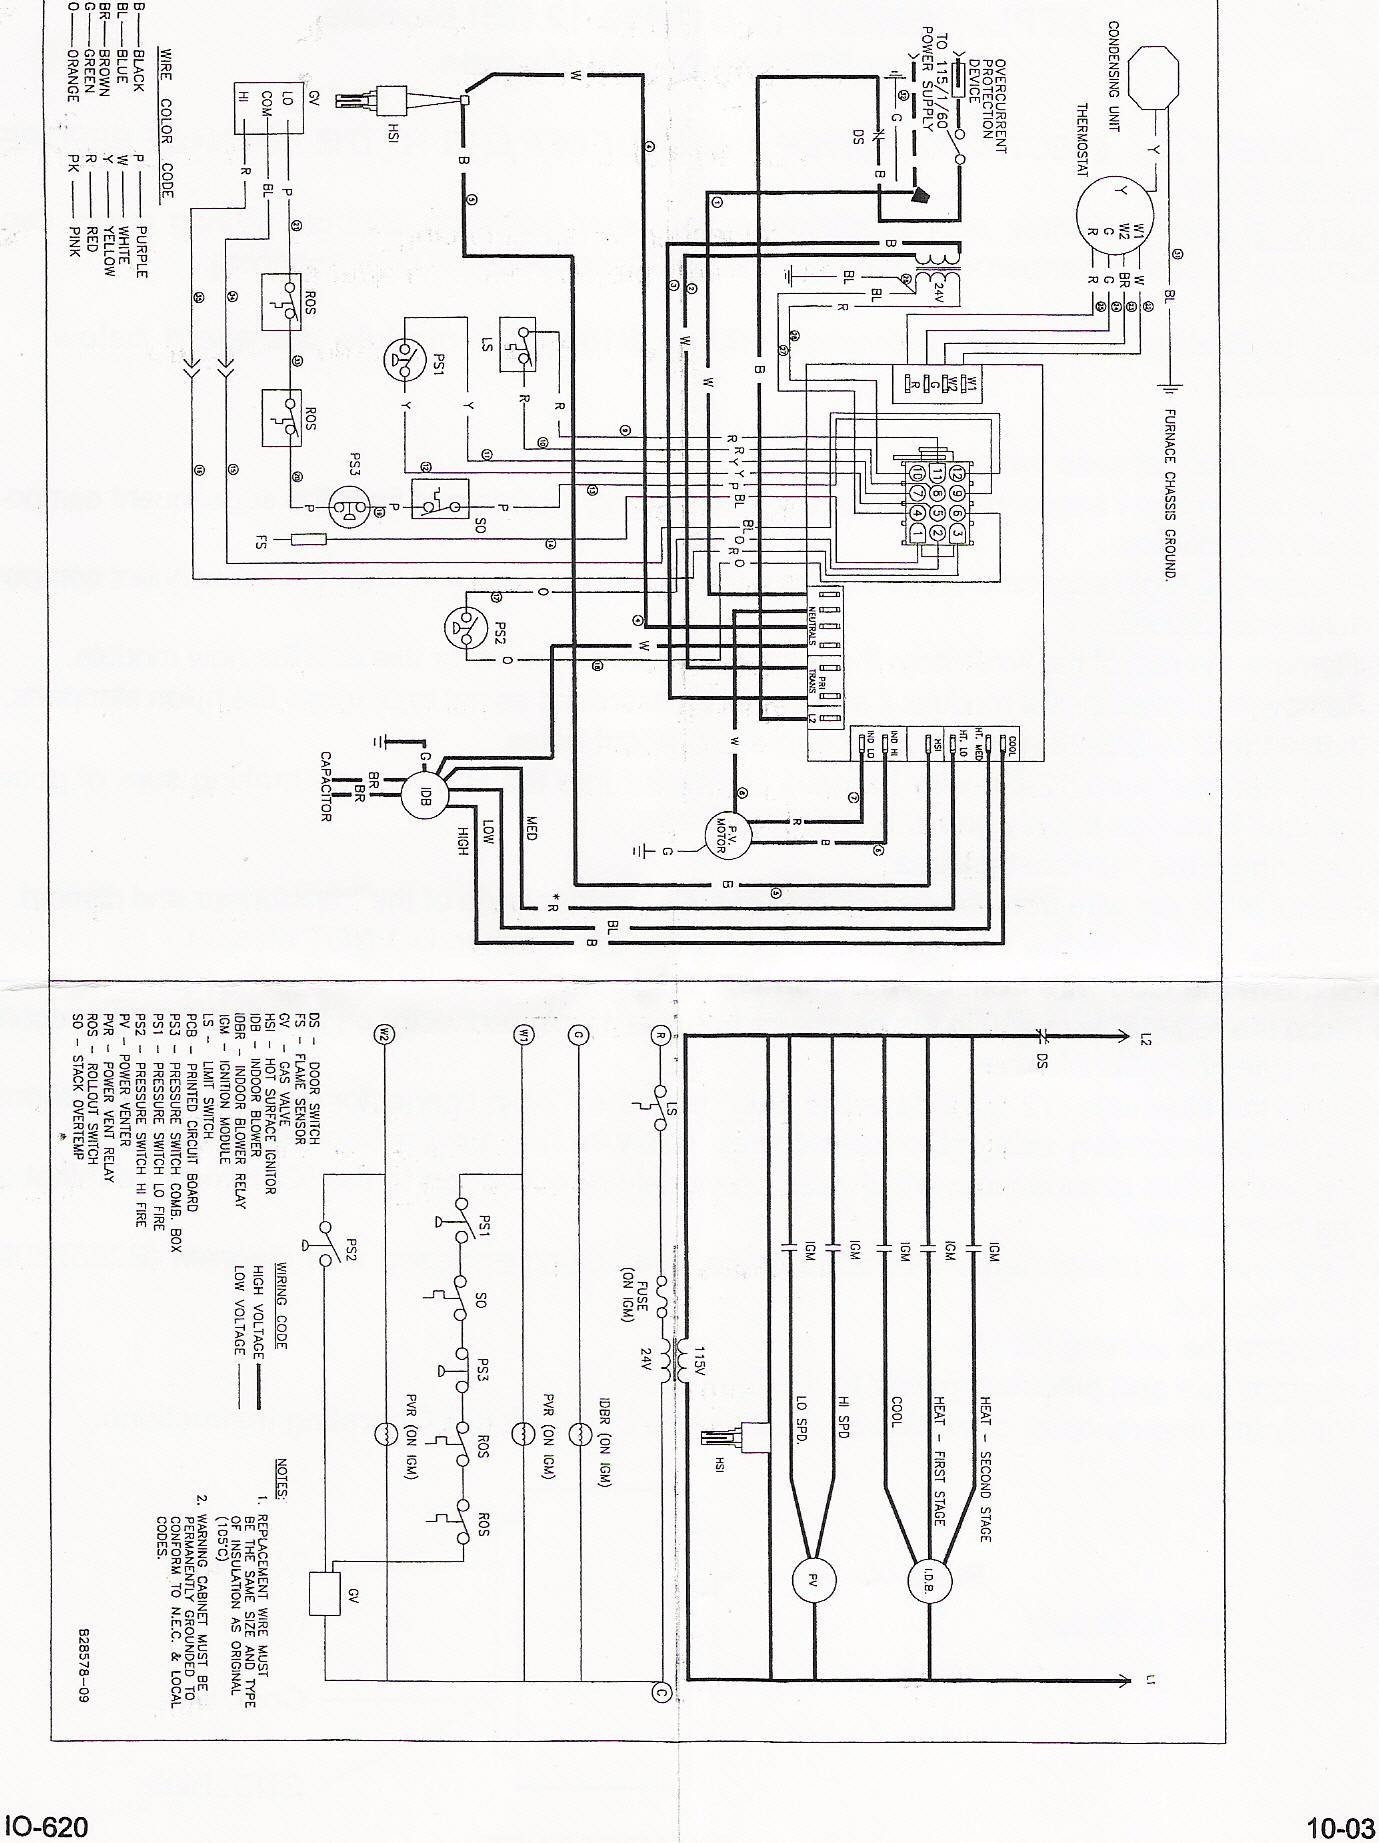 trane xr13 wiring diagram download